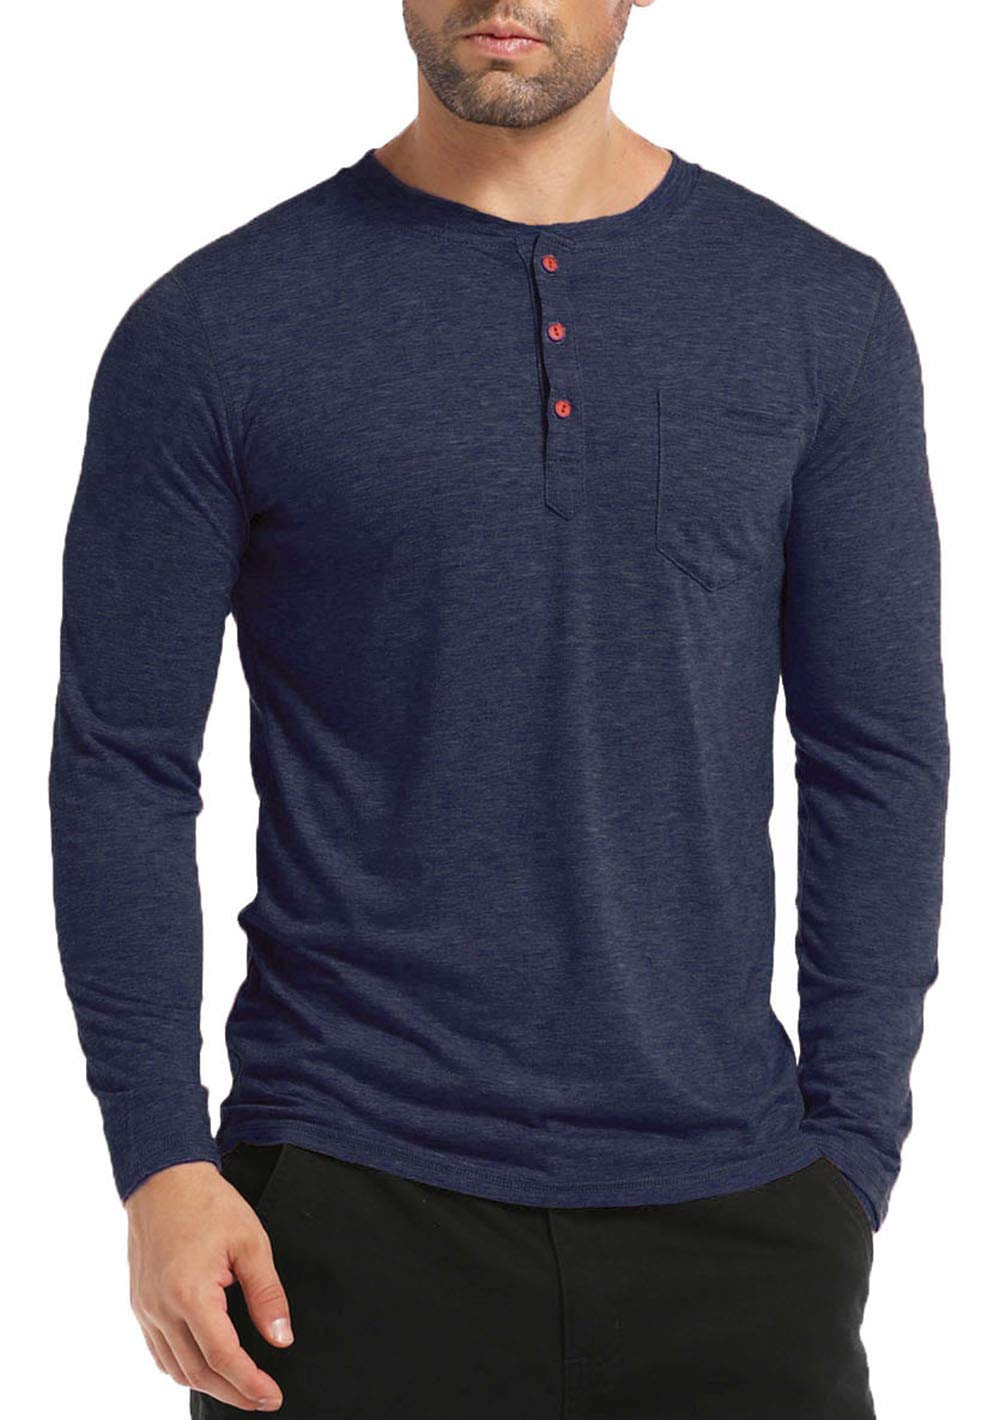 BABEIYXM Men's Henley Long Sleeve Shirts Soild Tee Shirts Front Pocket Tops Basic T-Shirts,Navy Blue,L